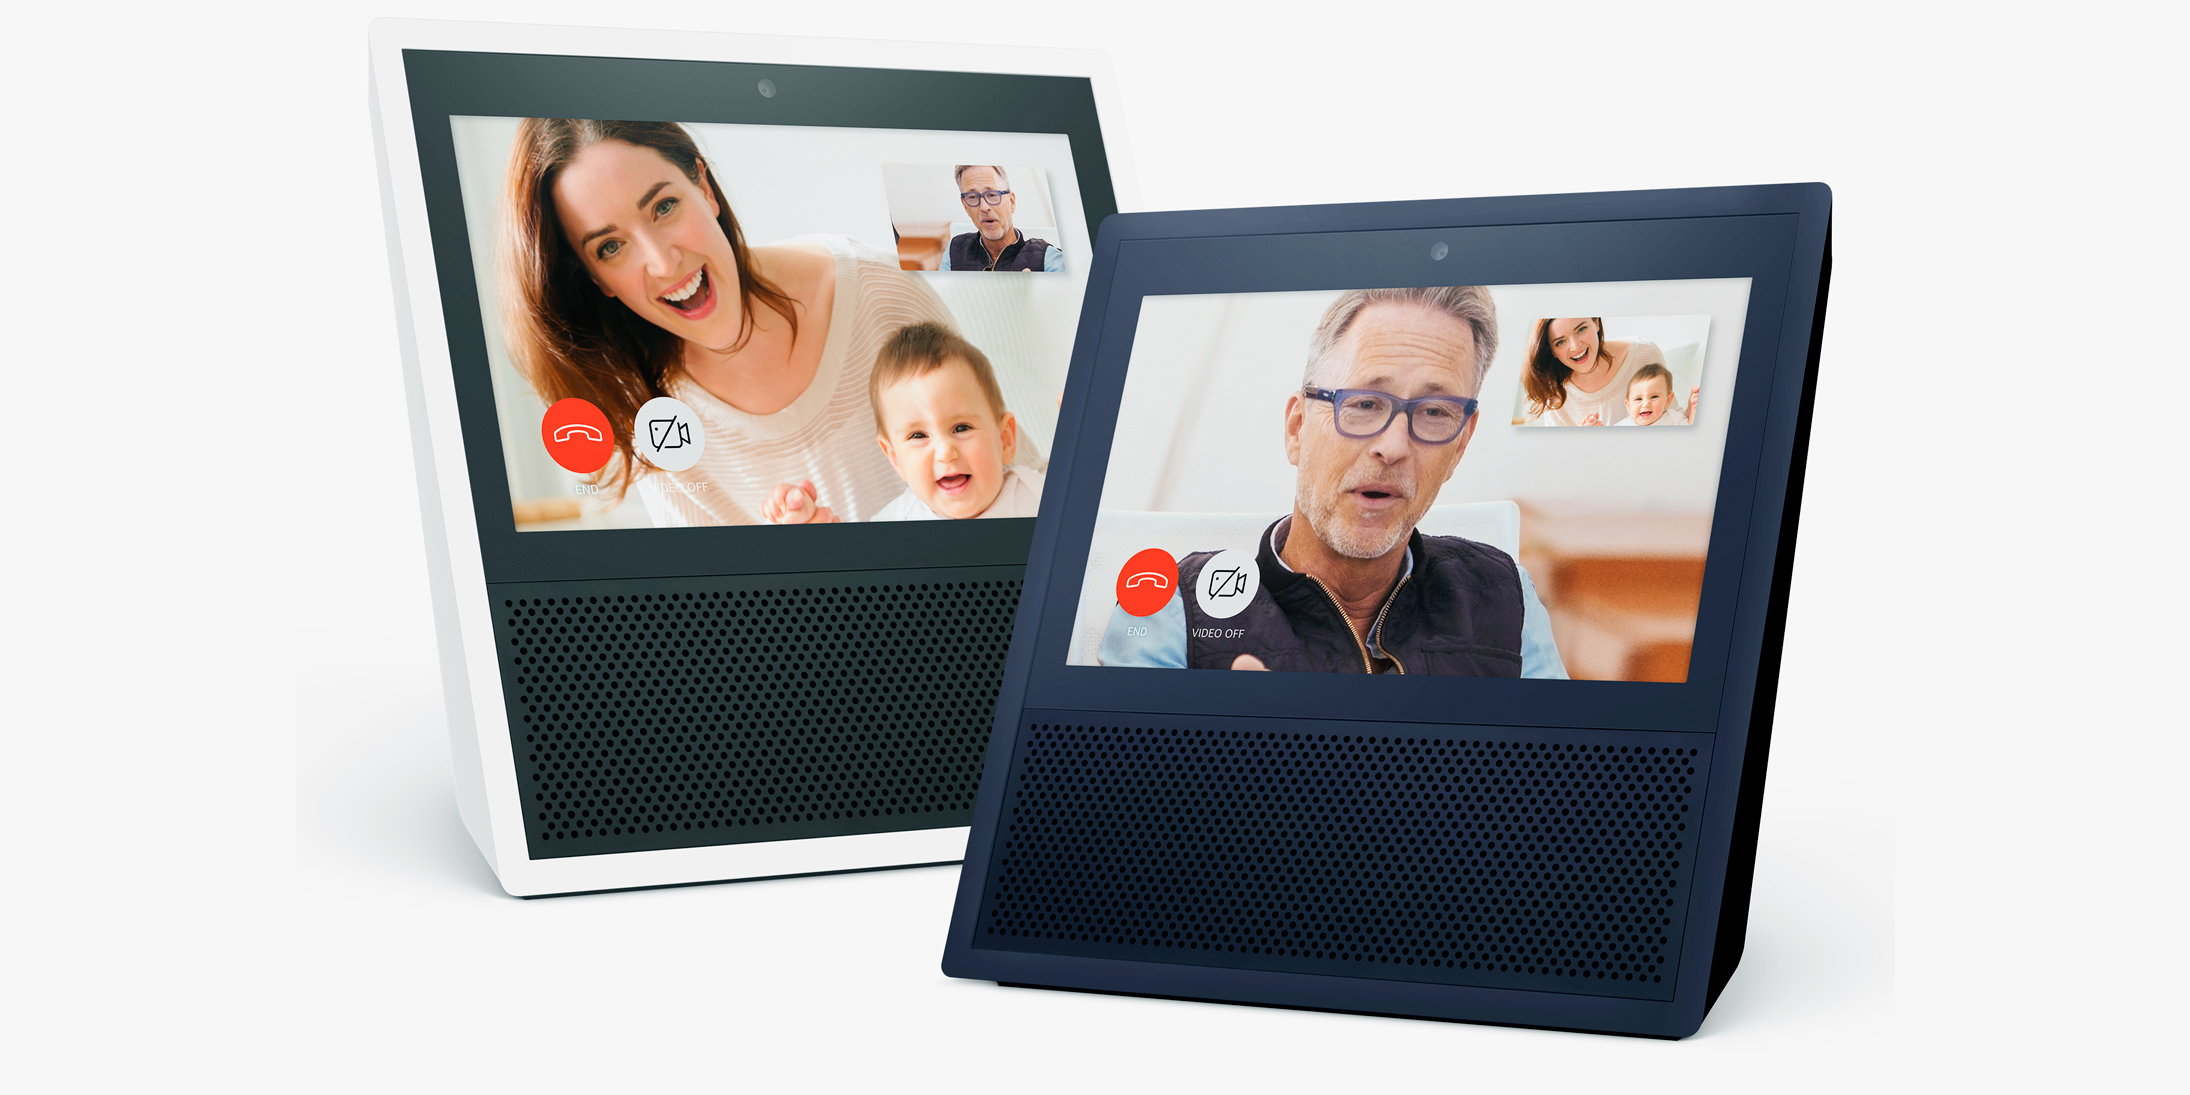 Amazon's Echo Show lets you keep an eye on the front door & gives recipes: $75 (Used, Orig. $230)